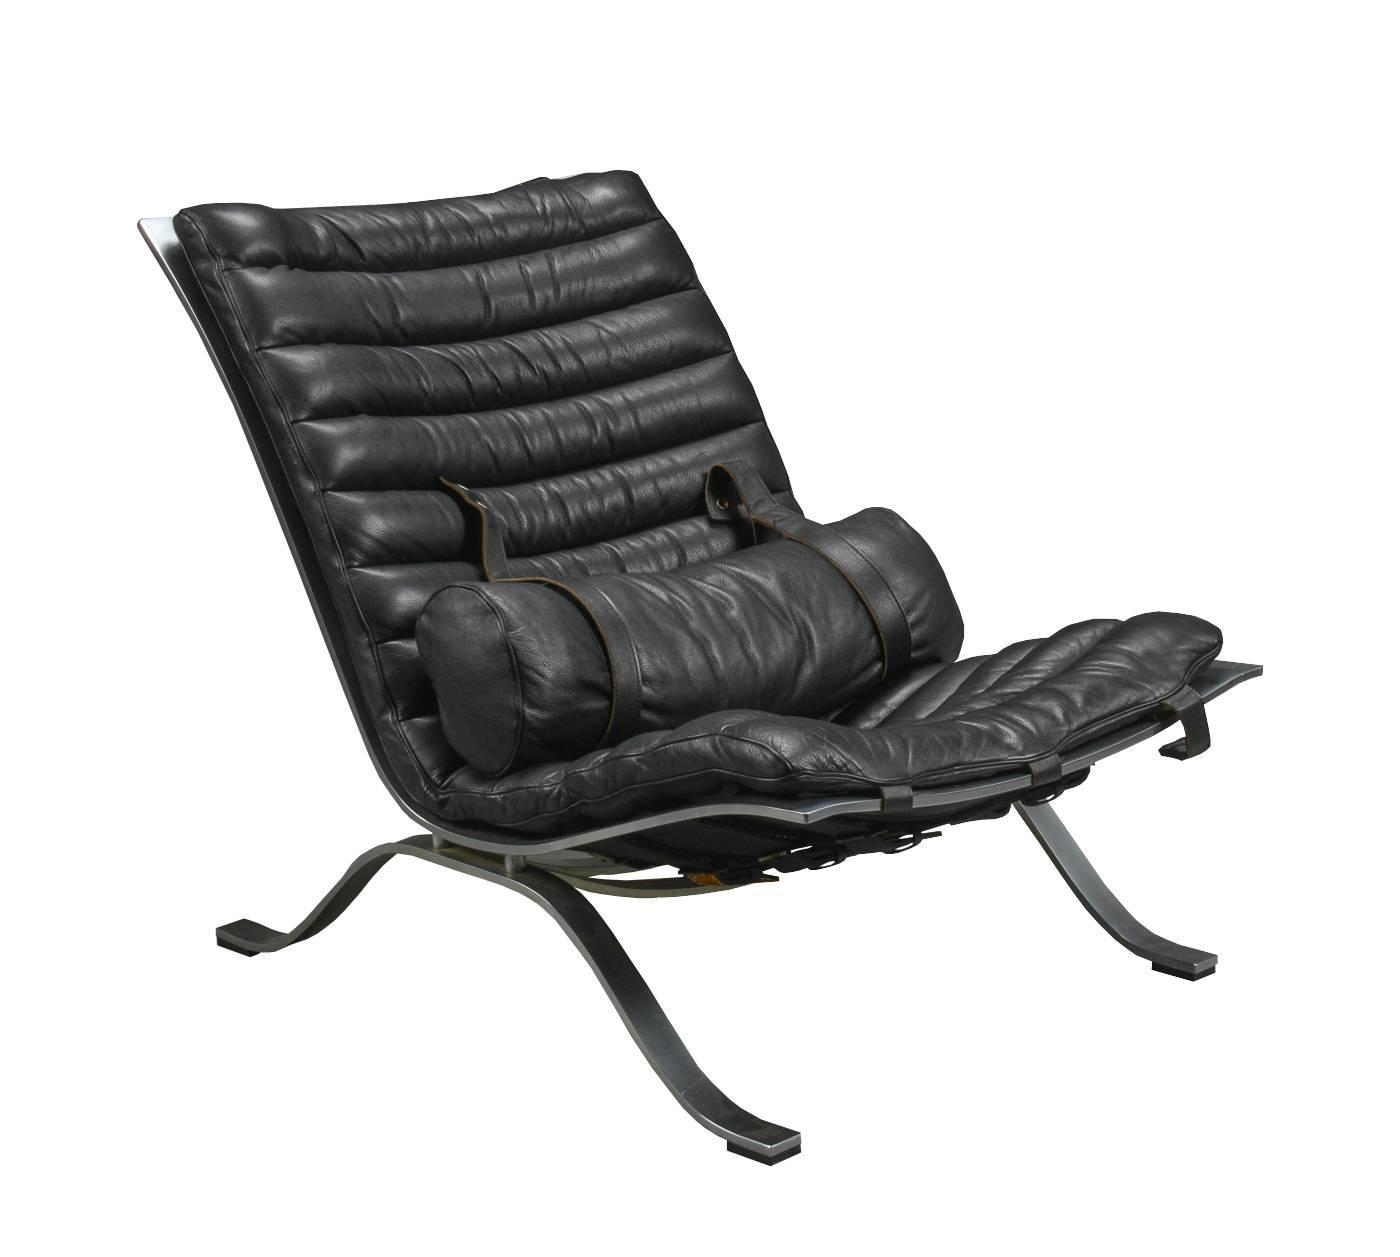 Ari Leather Dining Chair Ash: Ari Chair By Arne Norell In Black Leather For Sale At 1stdibs